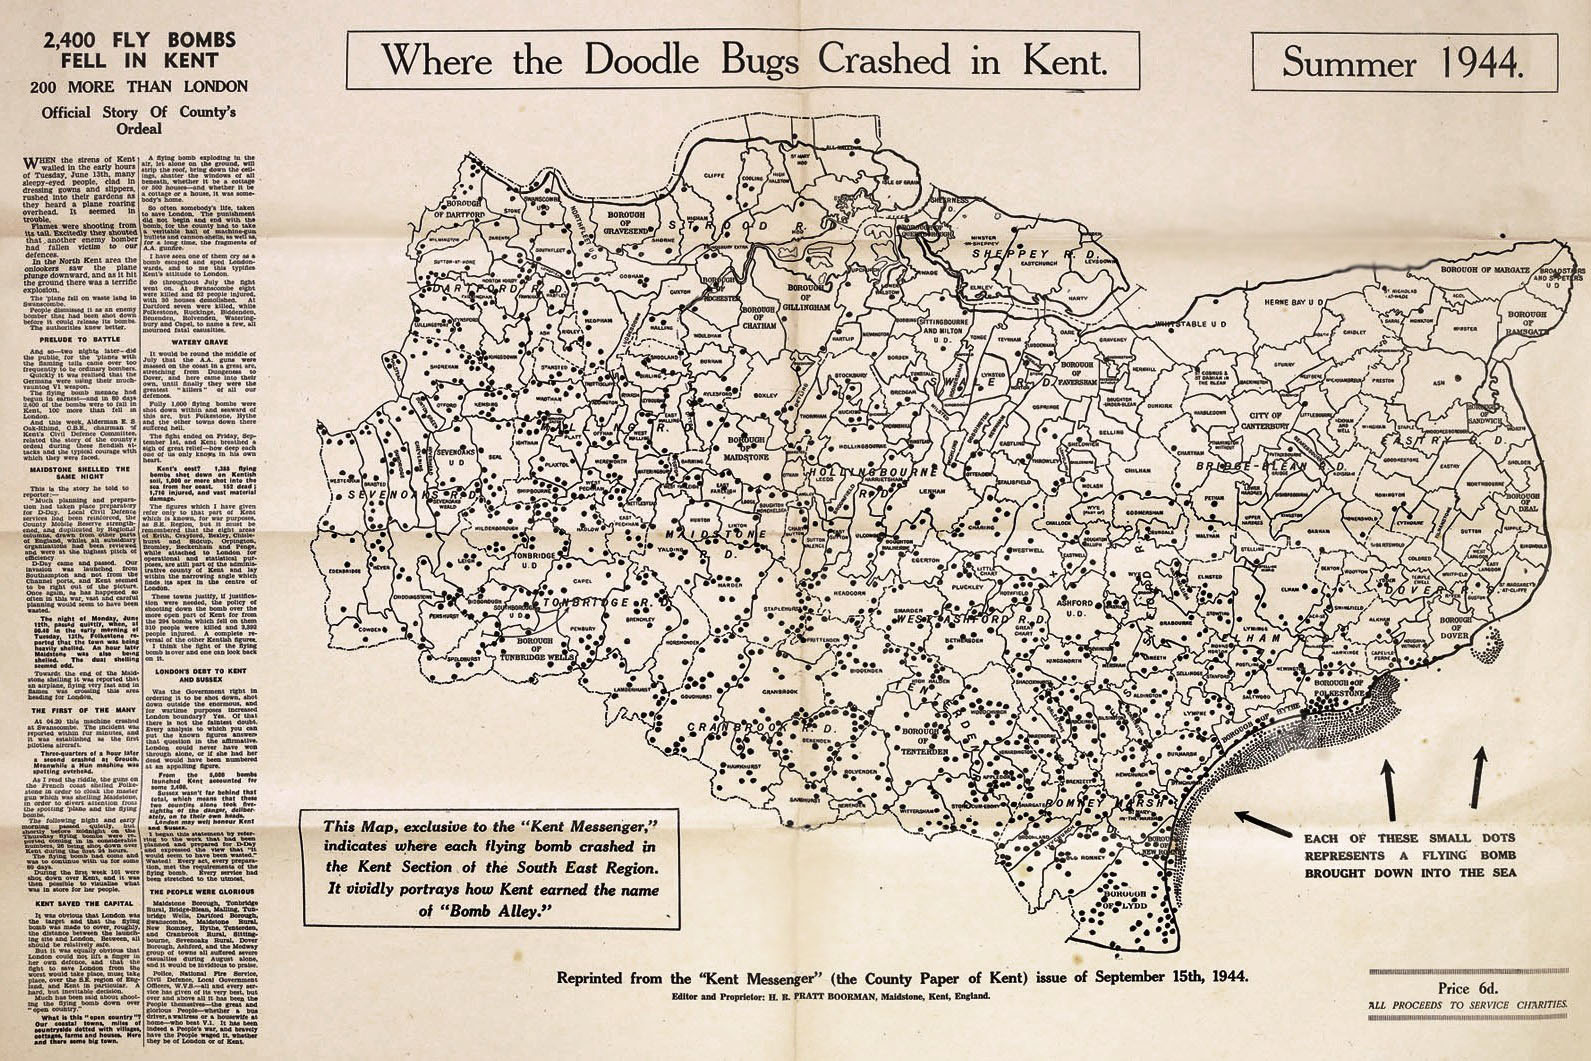 Map showing where the doodlebug fell in kent published in the Kent Messenger newspaper